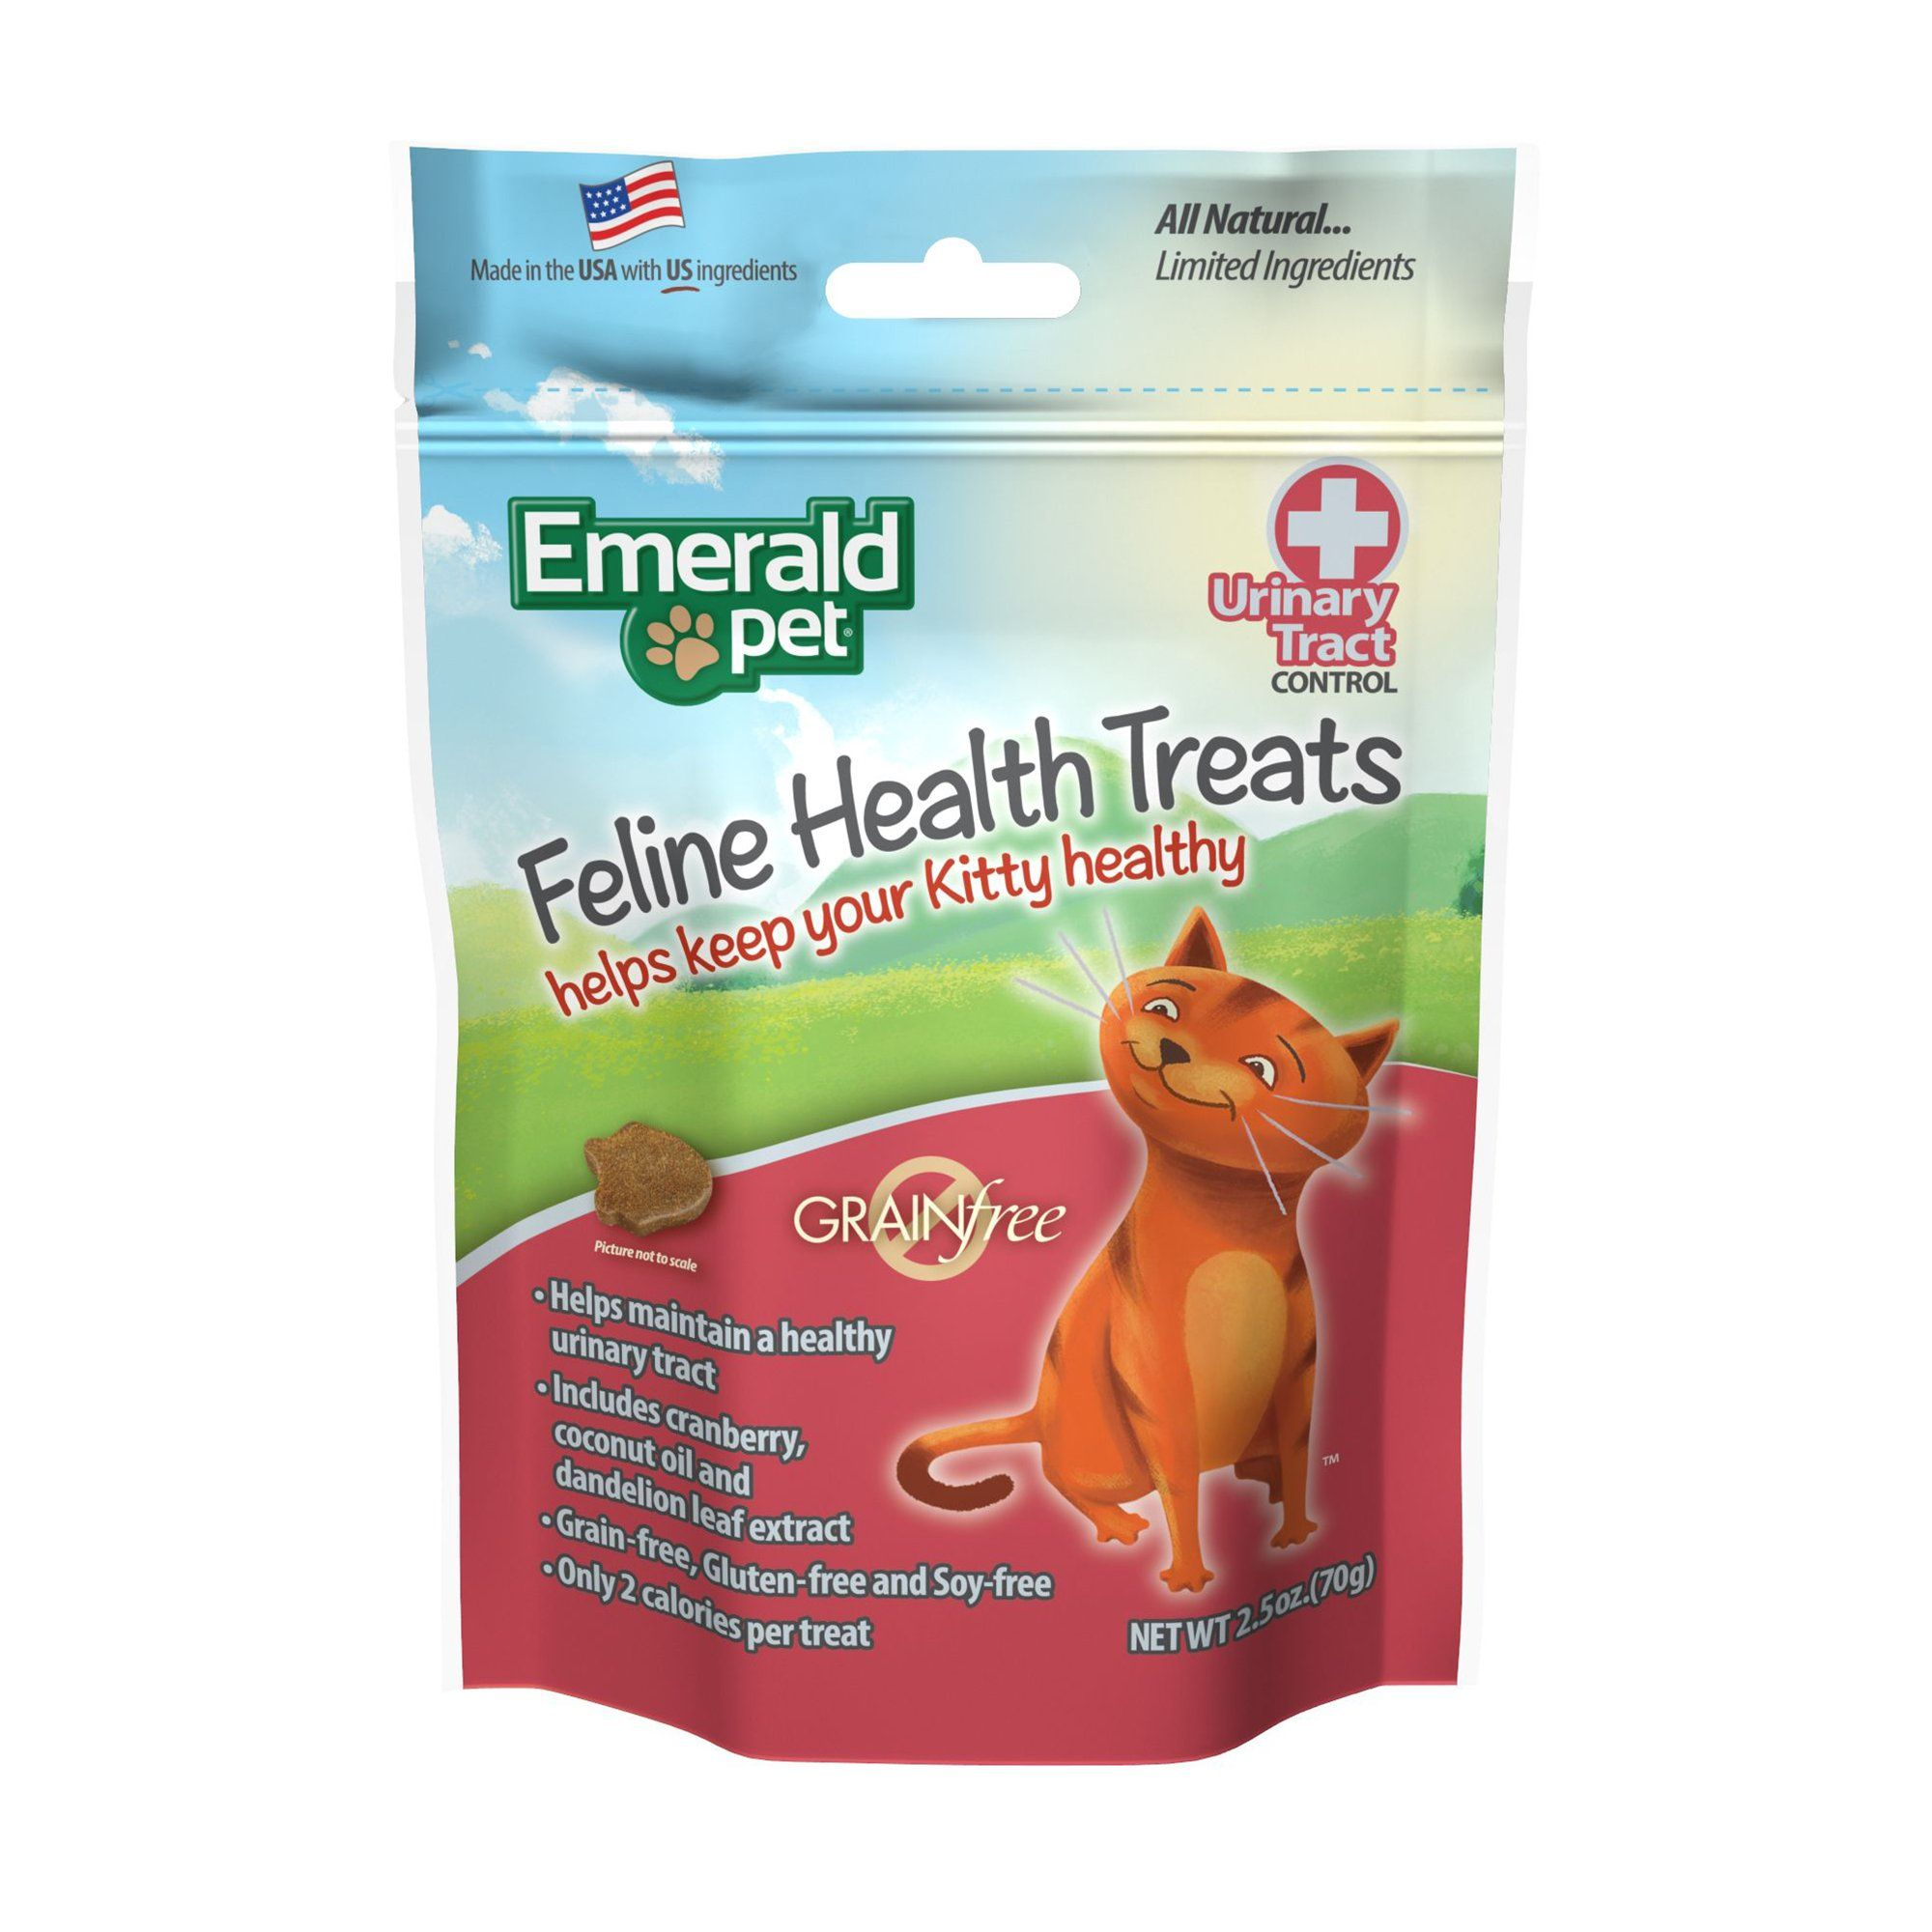 Emerald pet feline urinary tract control treat for cats 2